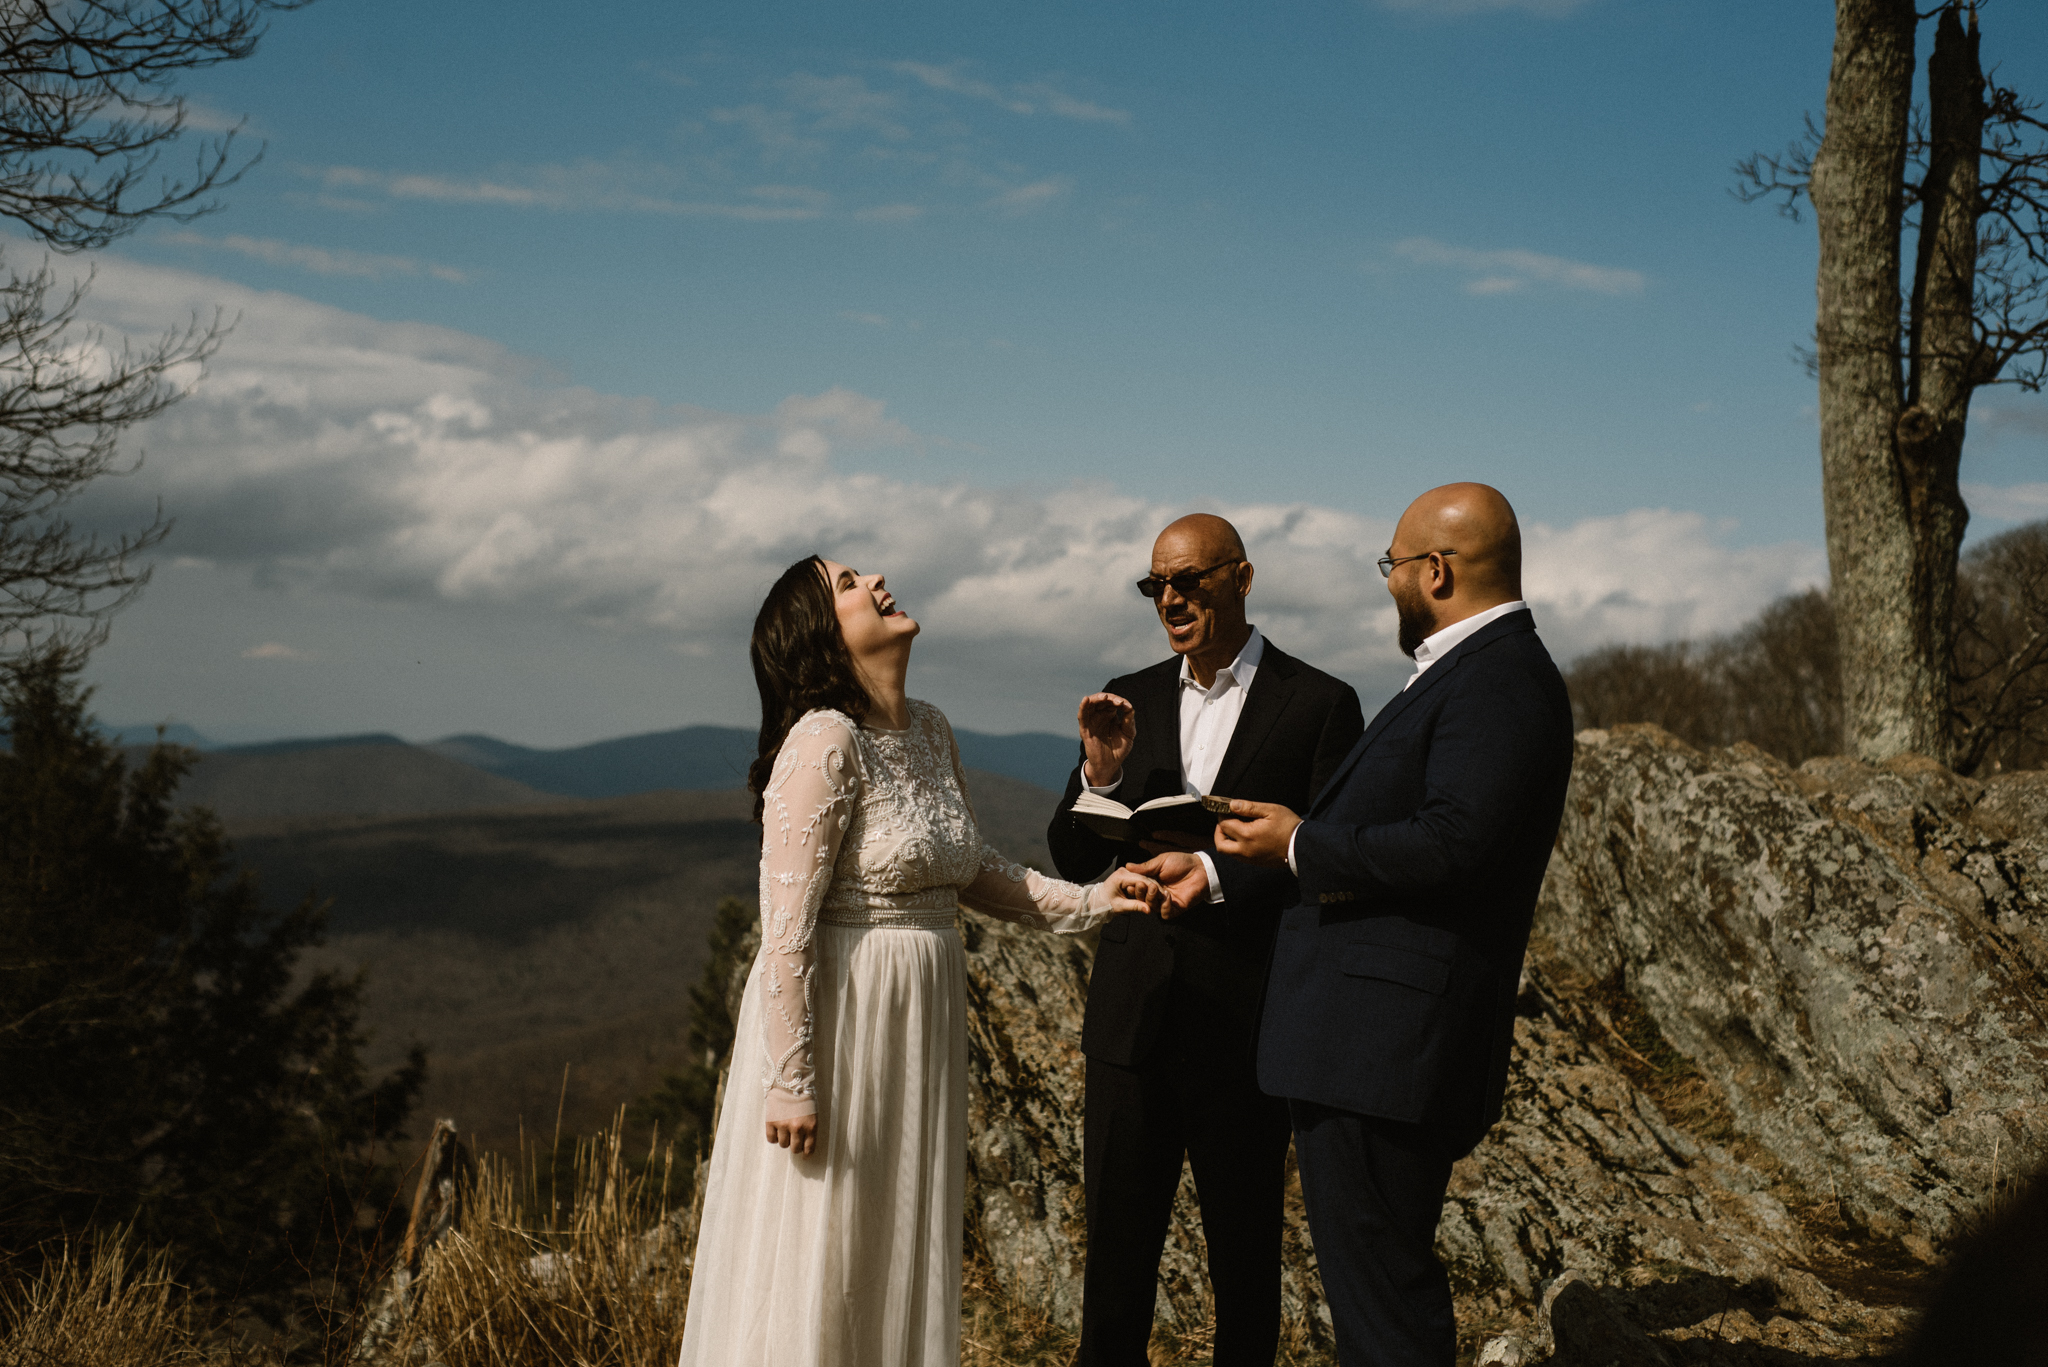 How To Get Married or Elope In Shenandoah National Park